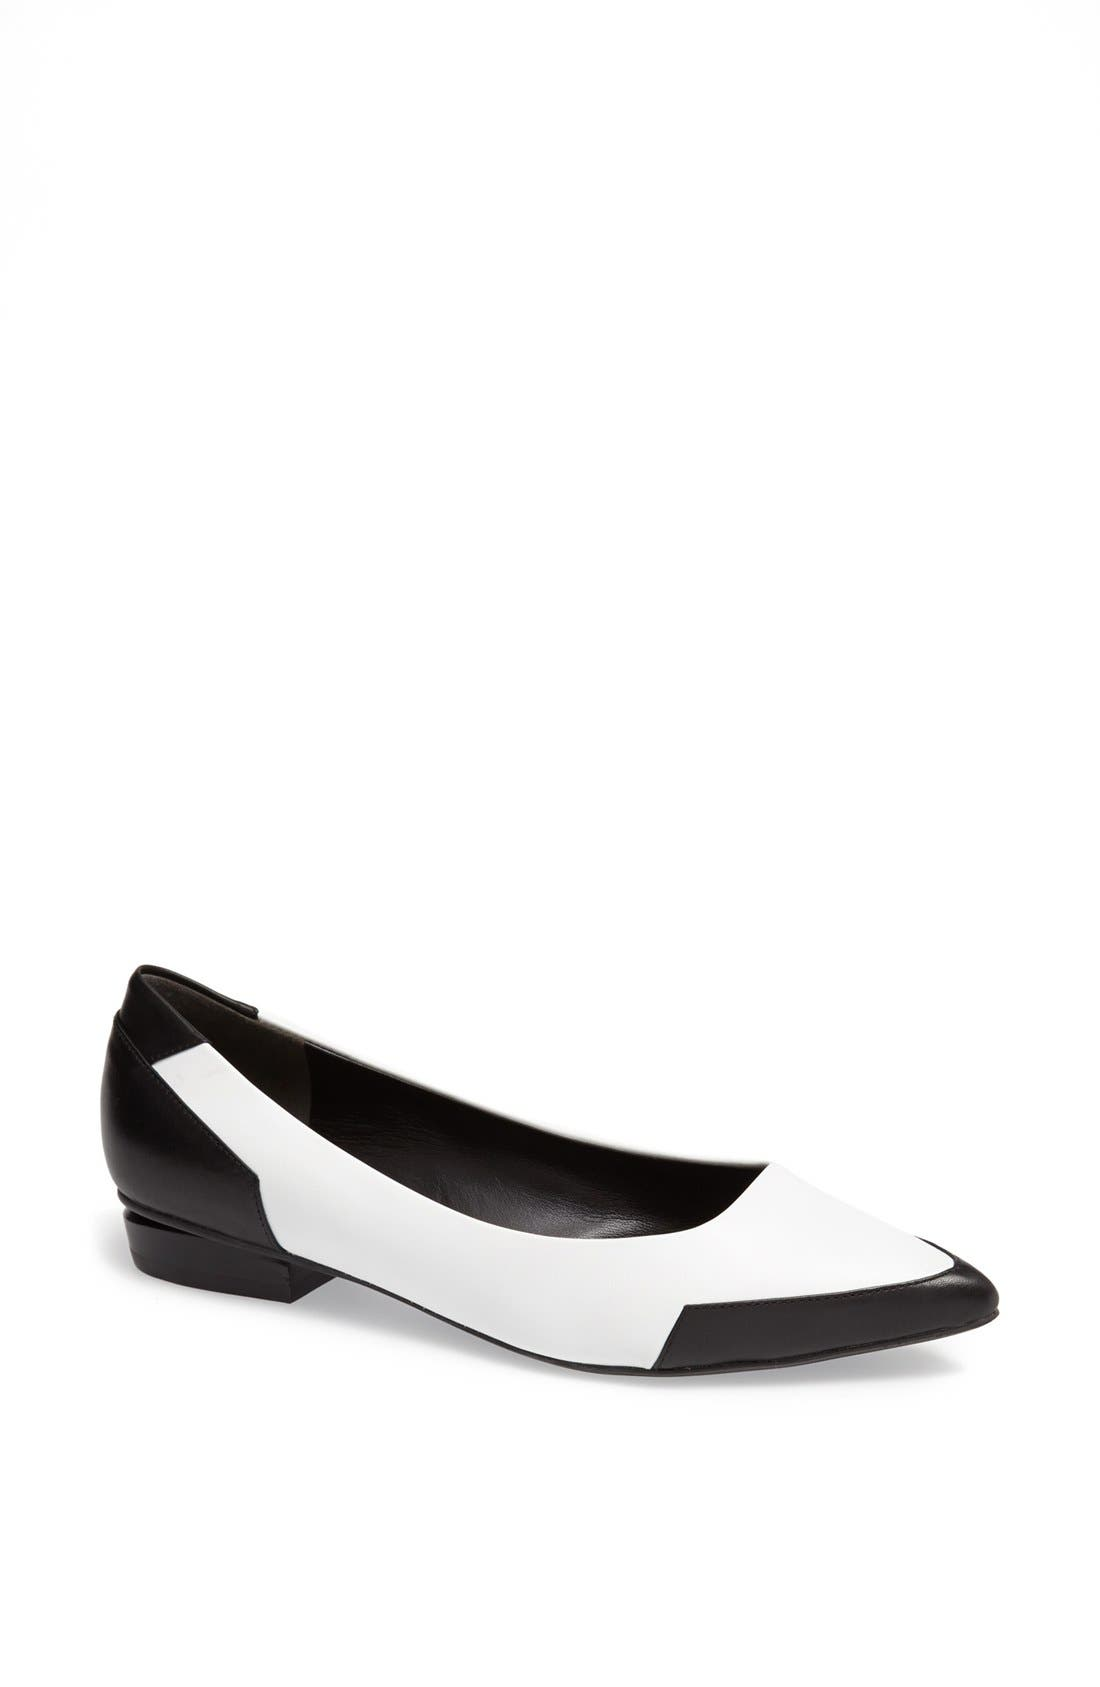 Alternate Image 1 Selected - Kenneth Cole New York 'Mulberry' Leather Flat